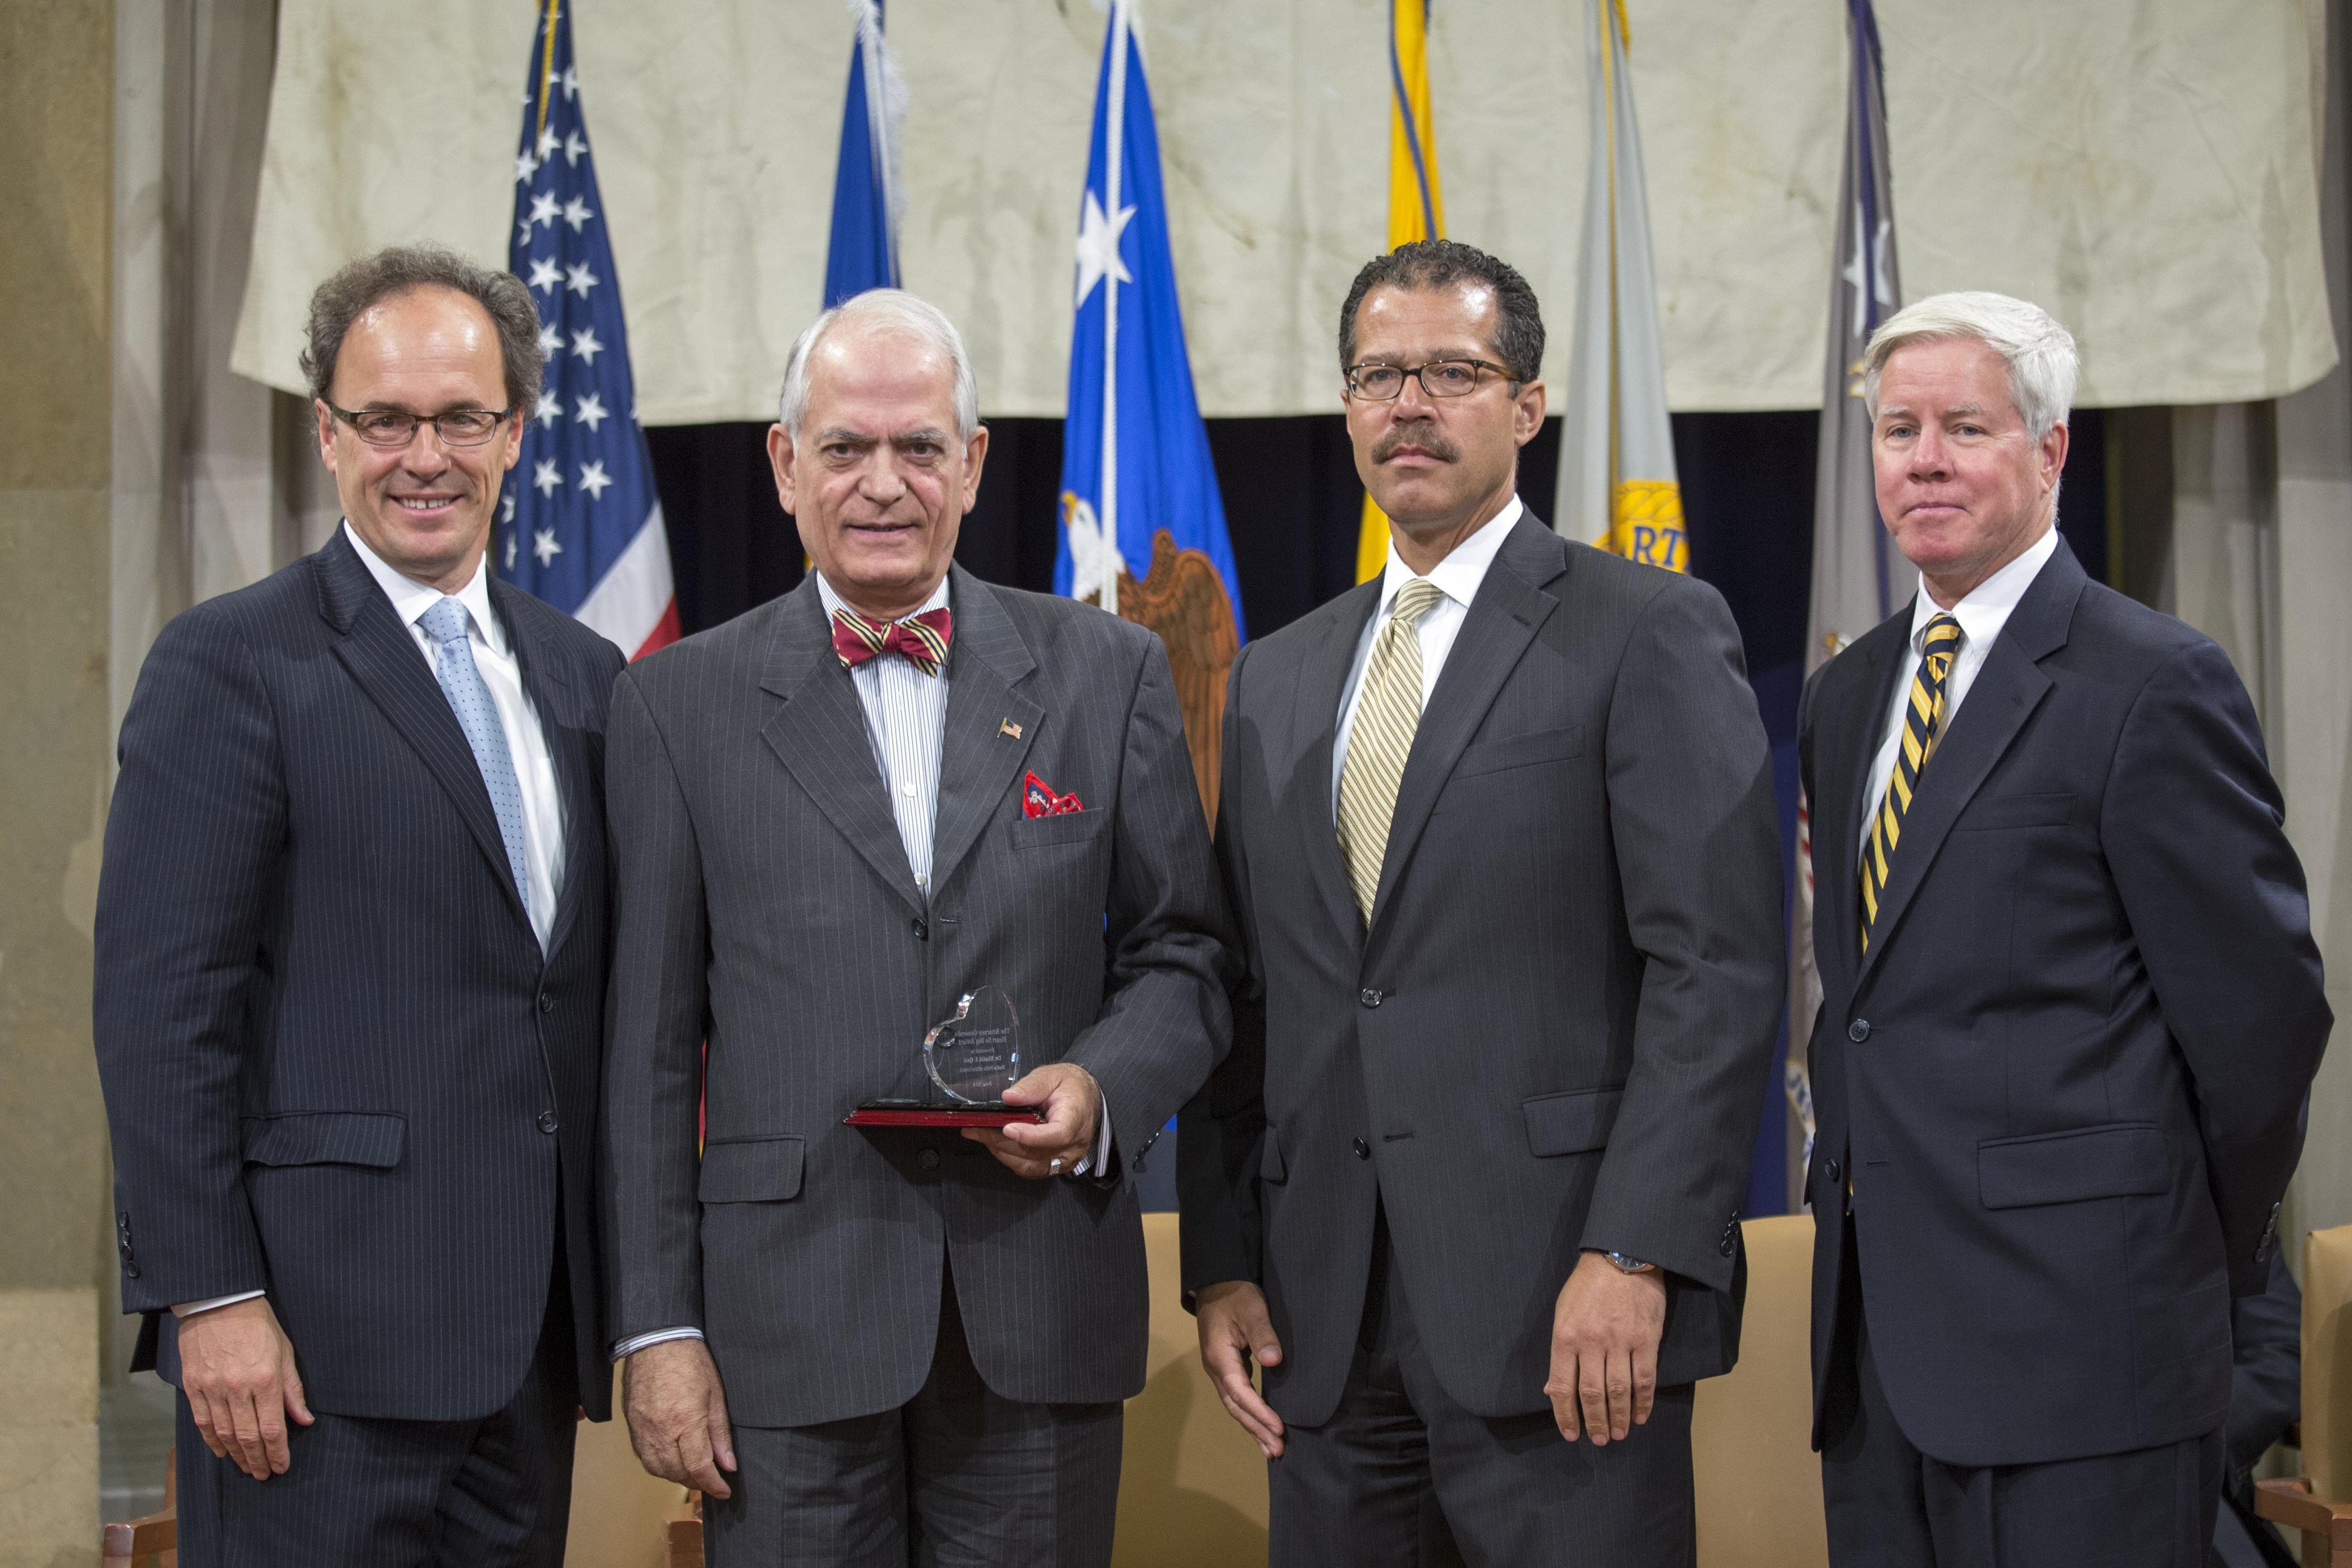 Amherst's Dr. Khalid J. Qazi, second from left, receives Justice Department award. With him are, from left, U.S. Attorney William J. Hochul Jr. and U.S. officials Monty Wilkinson and Lee Lofthus.